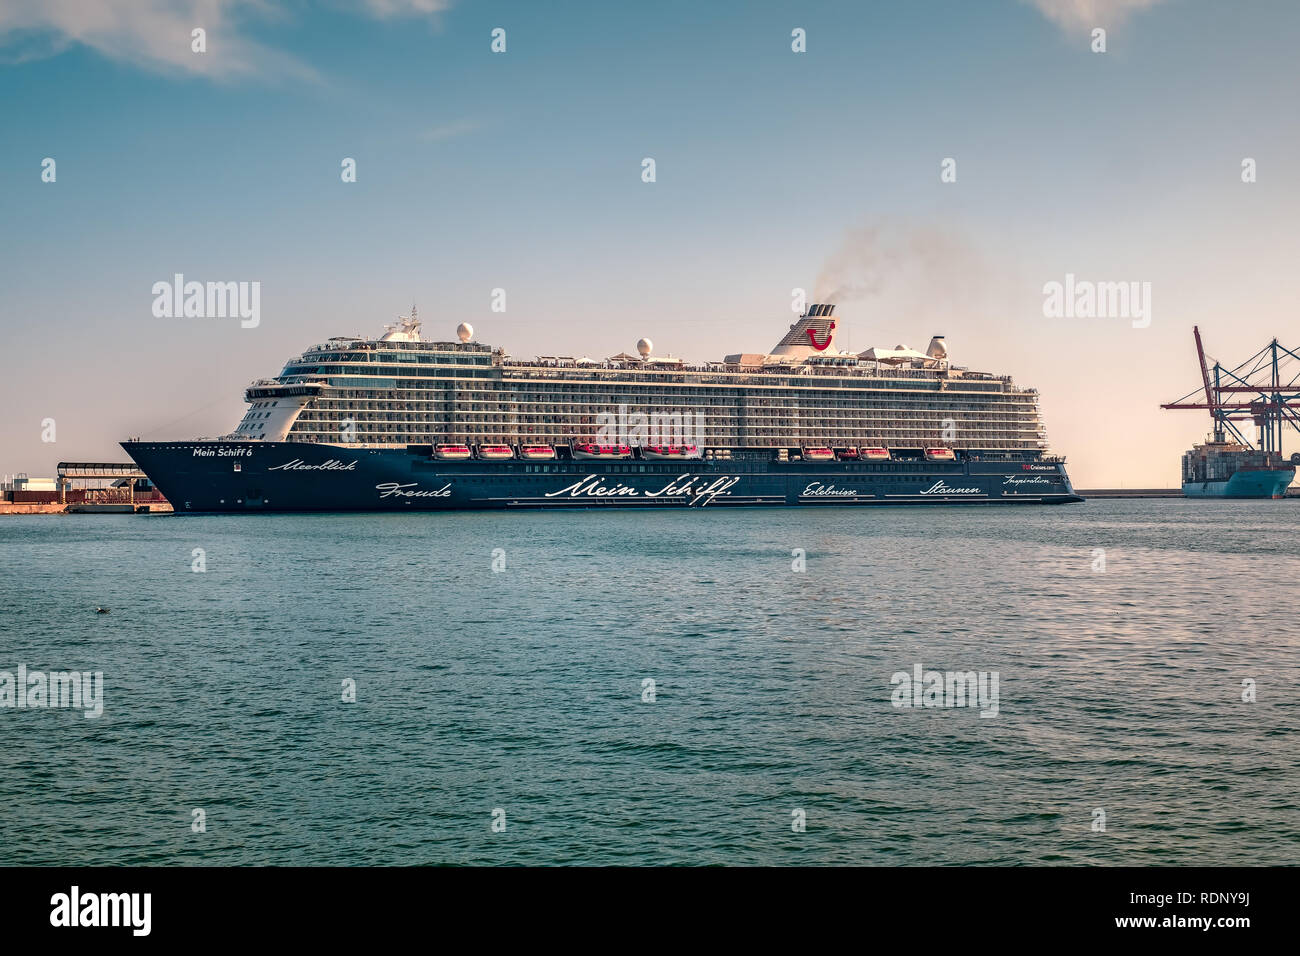 Malaga, Spain - August 23, 2018. Mein Schiff 6 cruise ship, owned and operated by TUI AG and RCCL (Royal Caribbean Cruises Ltd), docked at the port of - Stock Image